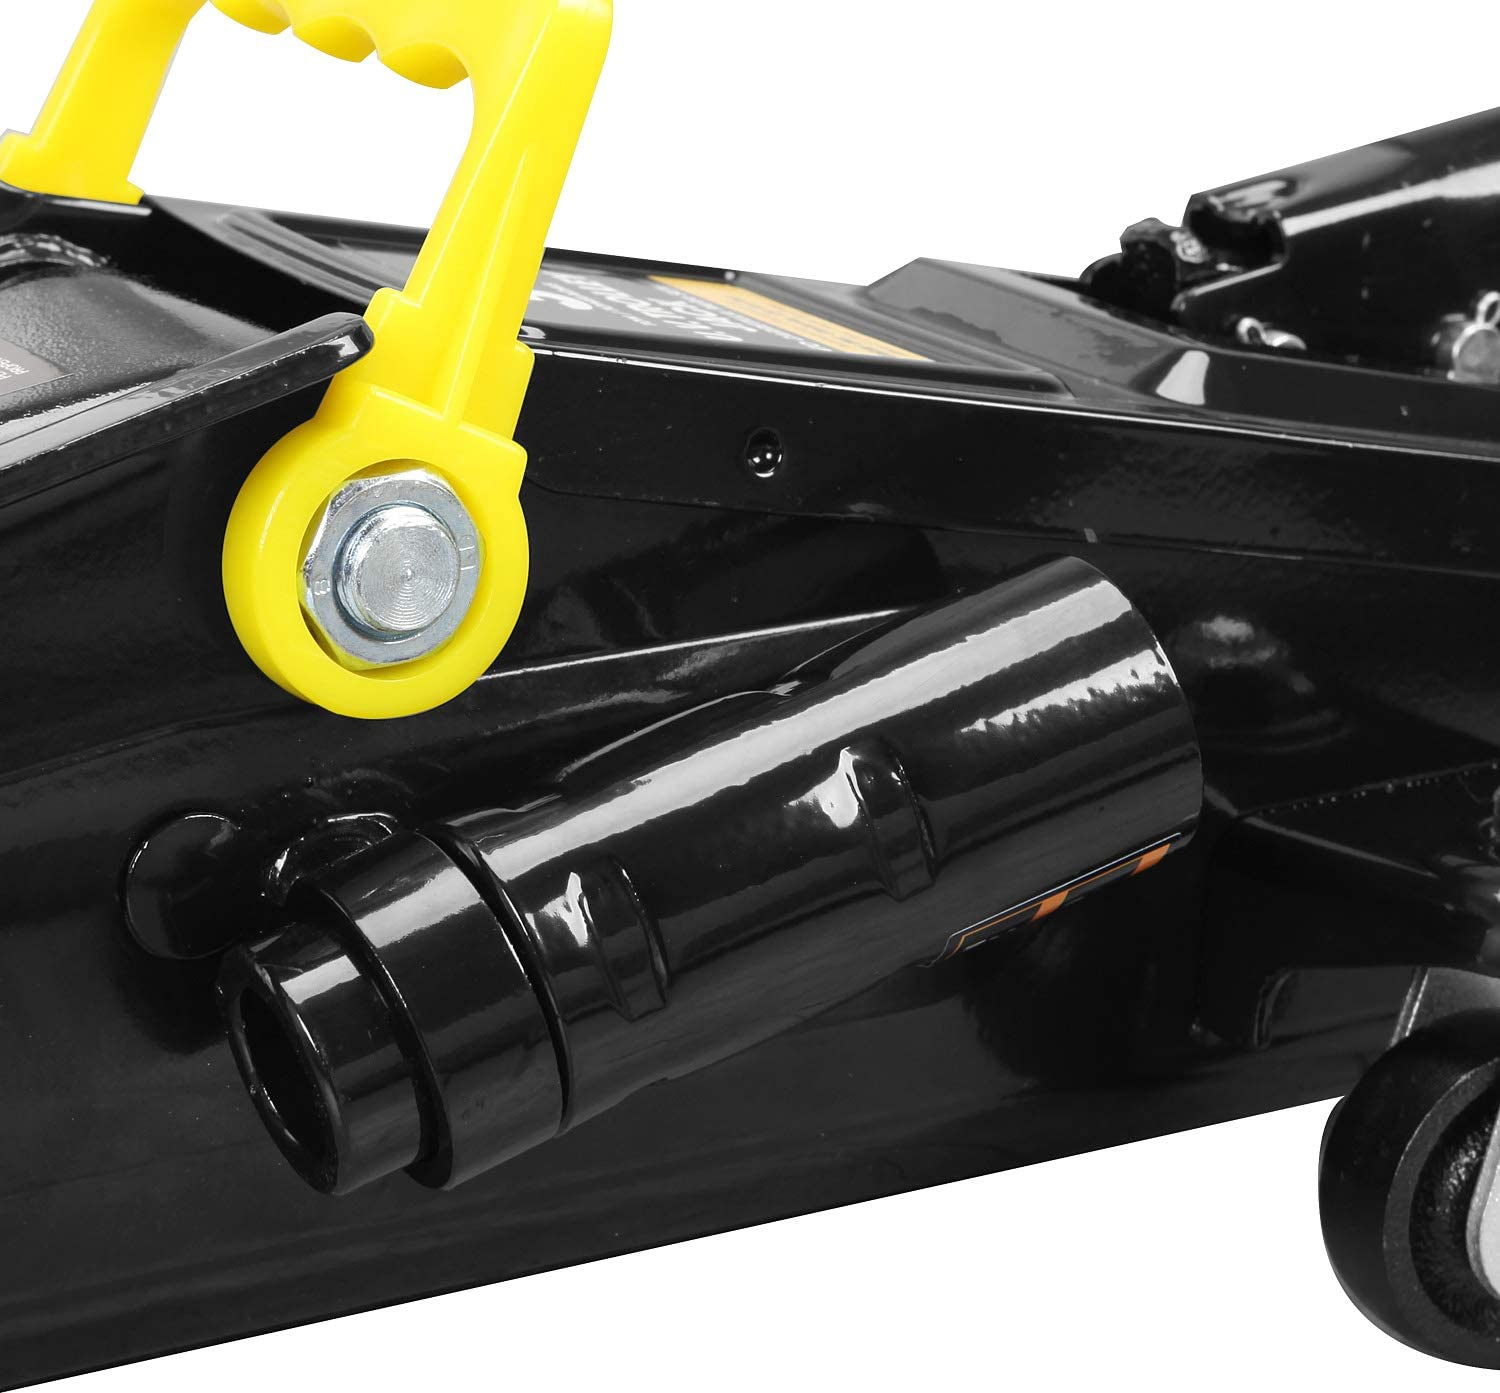 Torin AT83006B Hydraulic Trolley Service//Floor Jack with Extra Saddle: 3 Ton Black Capacity 6,000 lb